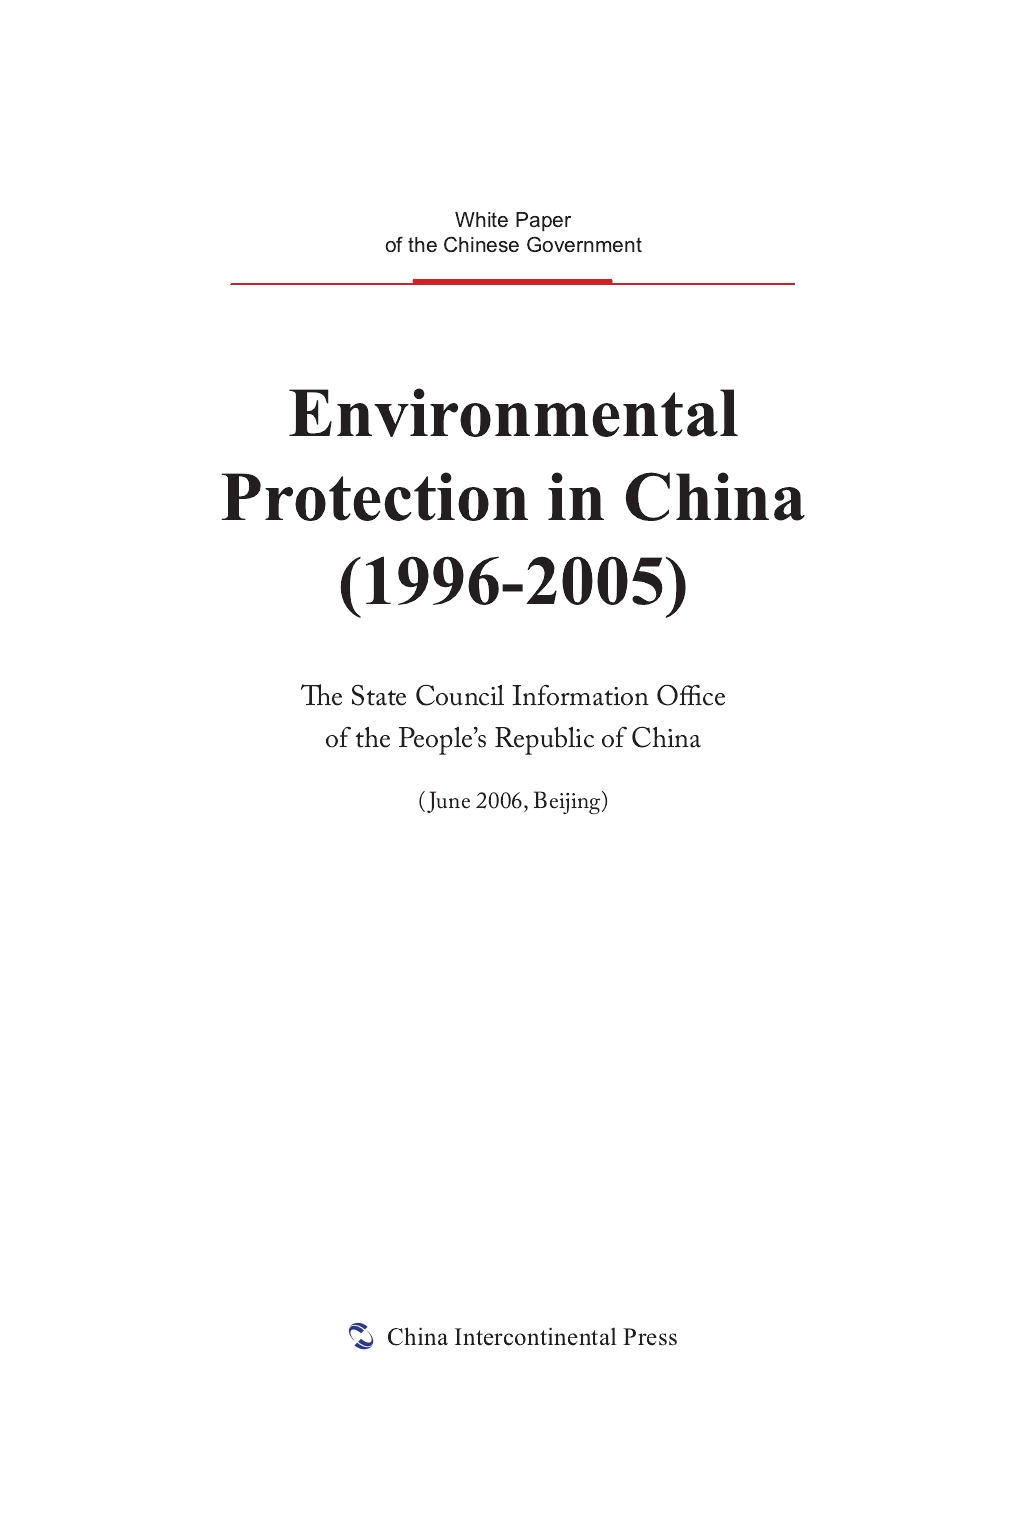 Environmental Protection in China(1996-2005)